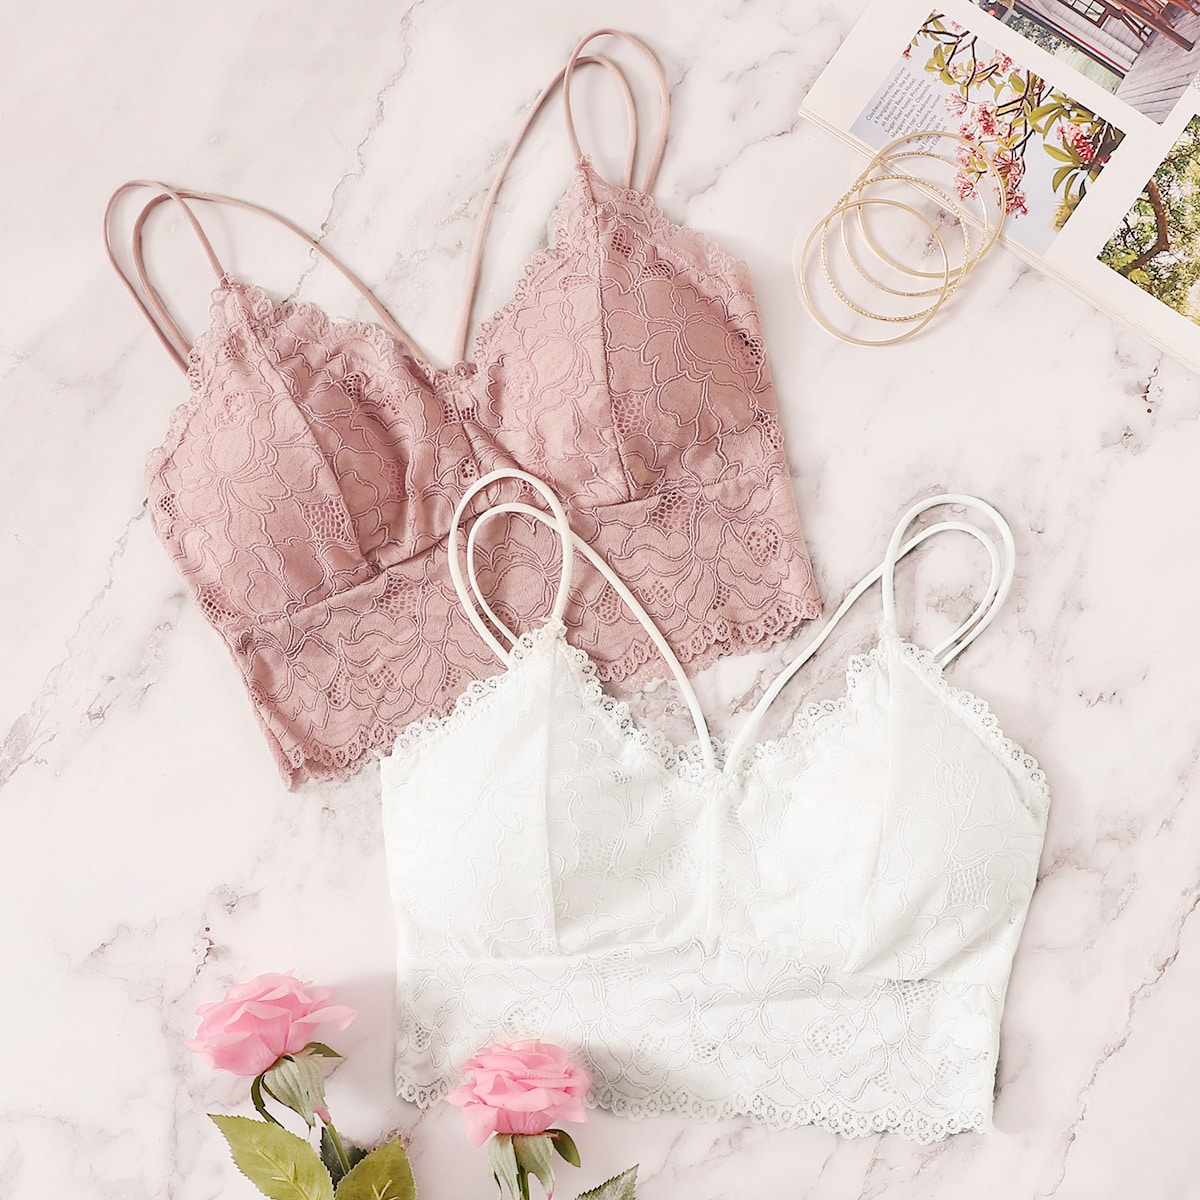 SHEIN coupon: Floral Lace Criss Cross Bra Set 2pack